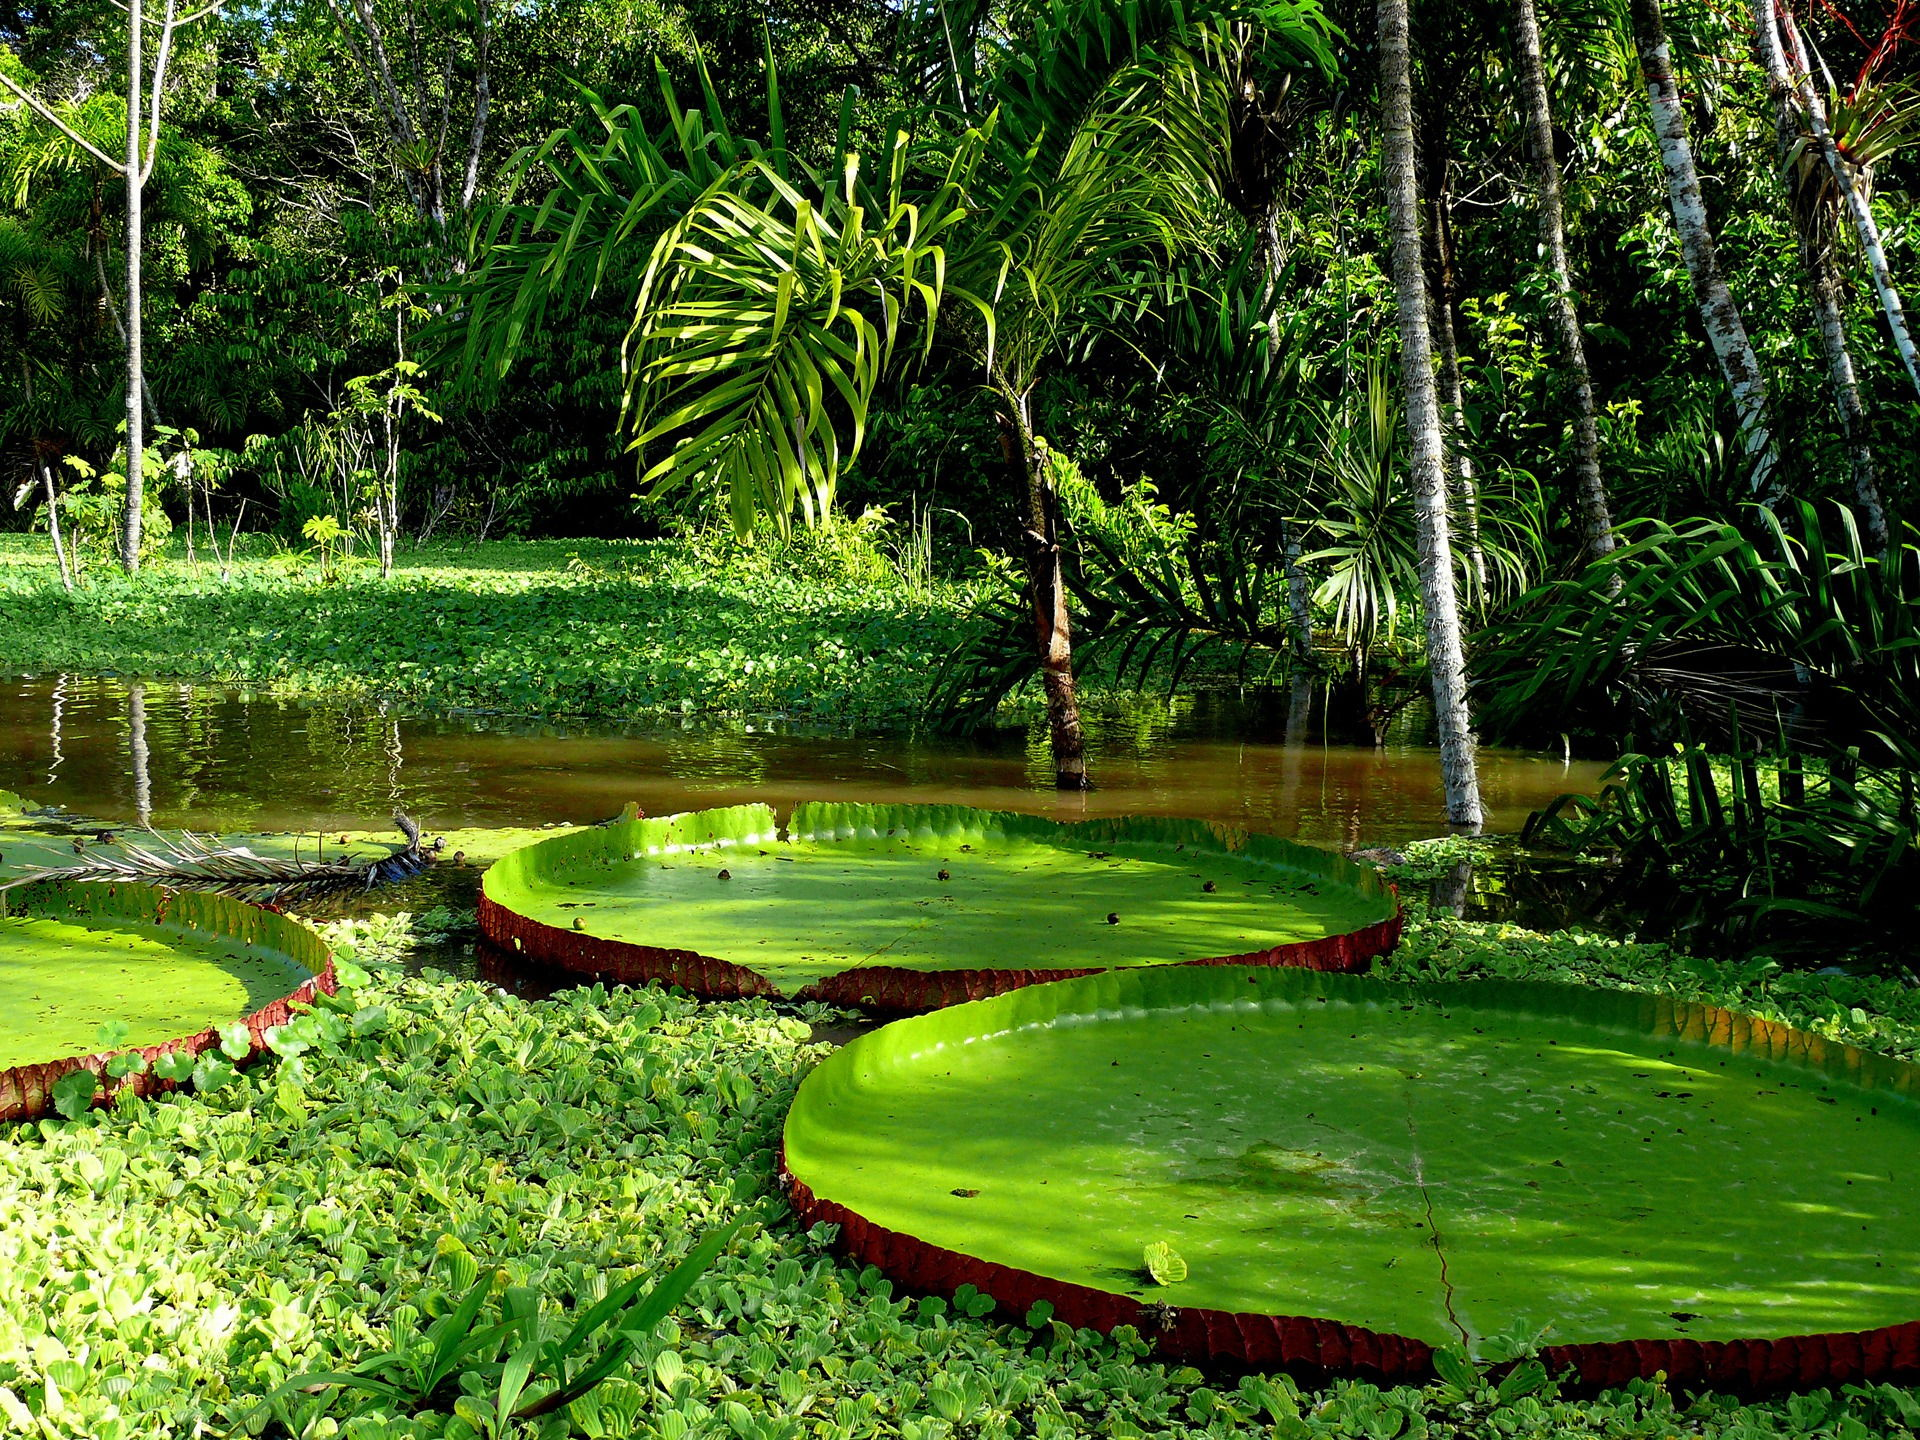 river high definition wallpaper download jungle river images free 960